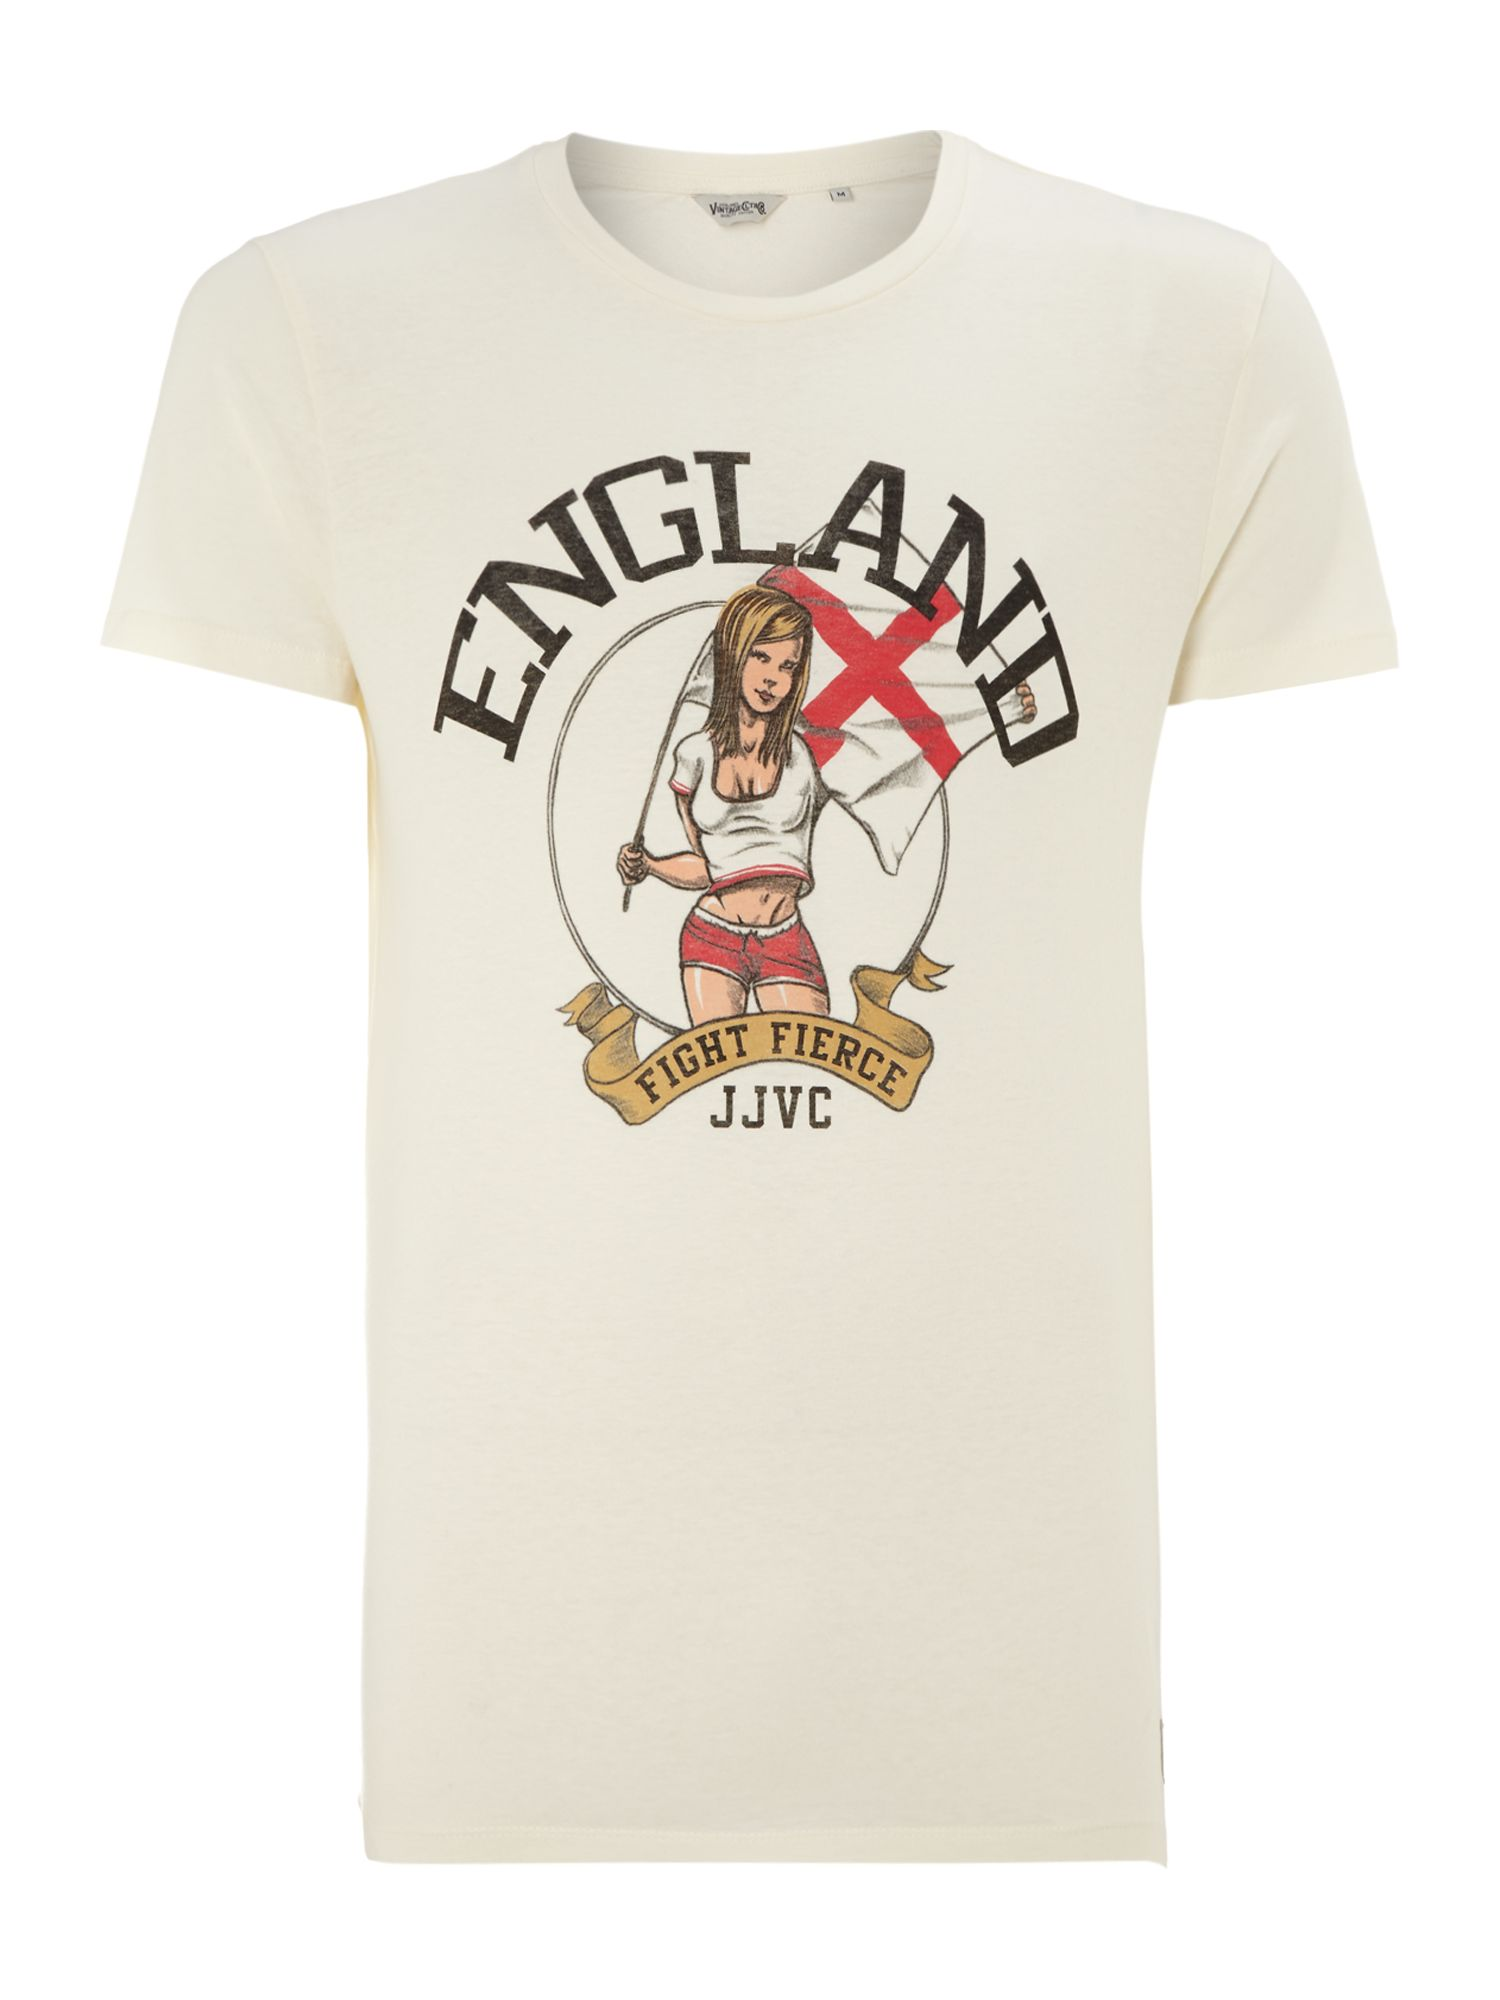 Fierce football t-shirt